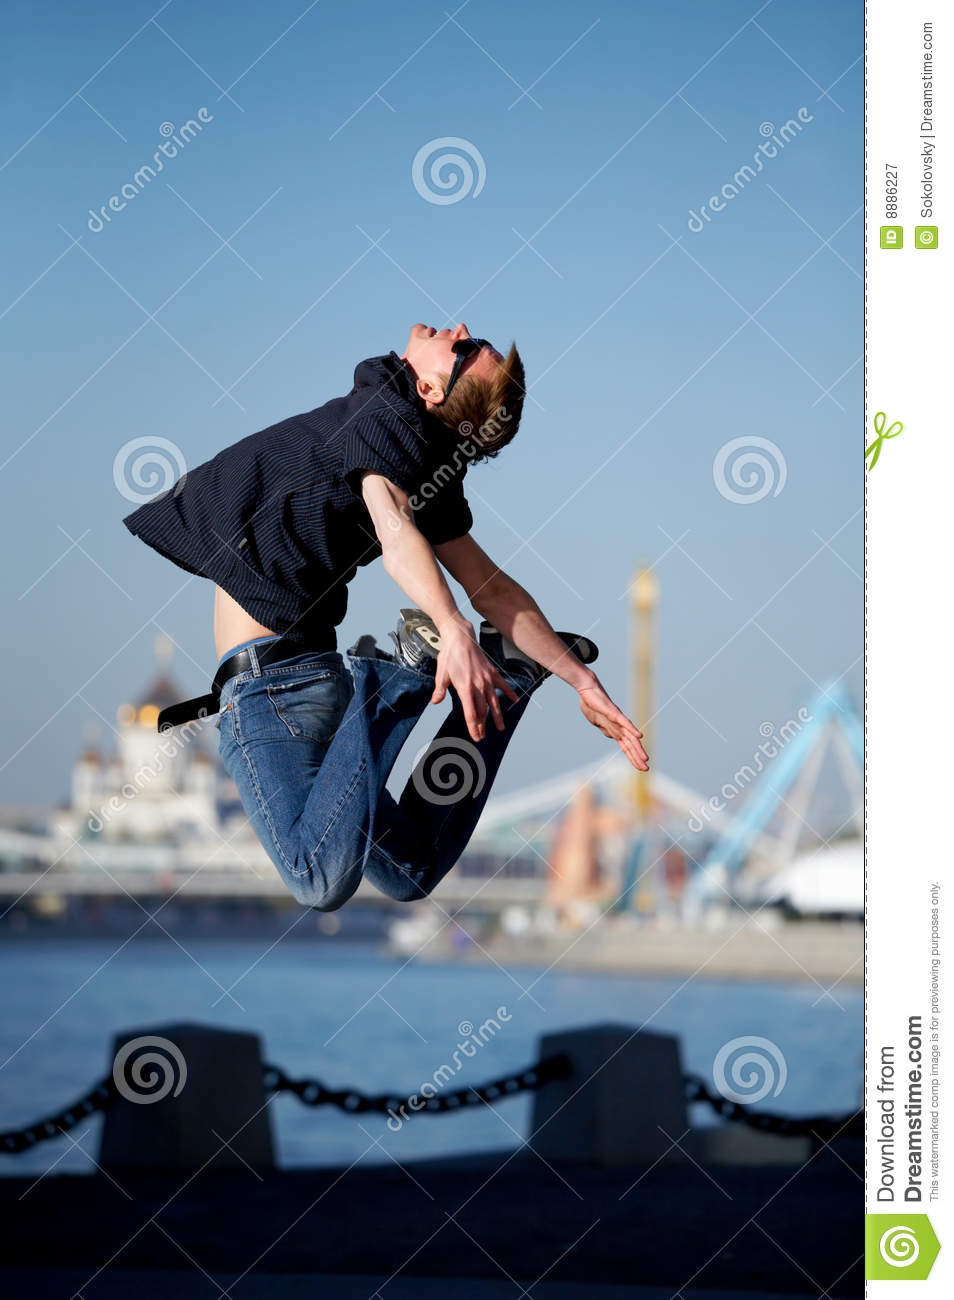 Funny Jumping Young Man Outdoors